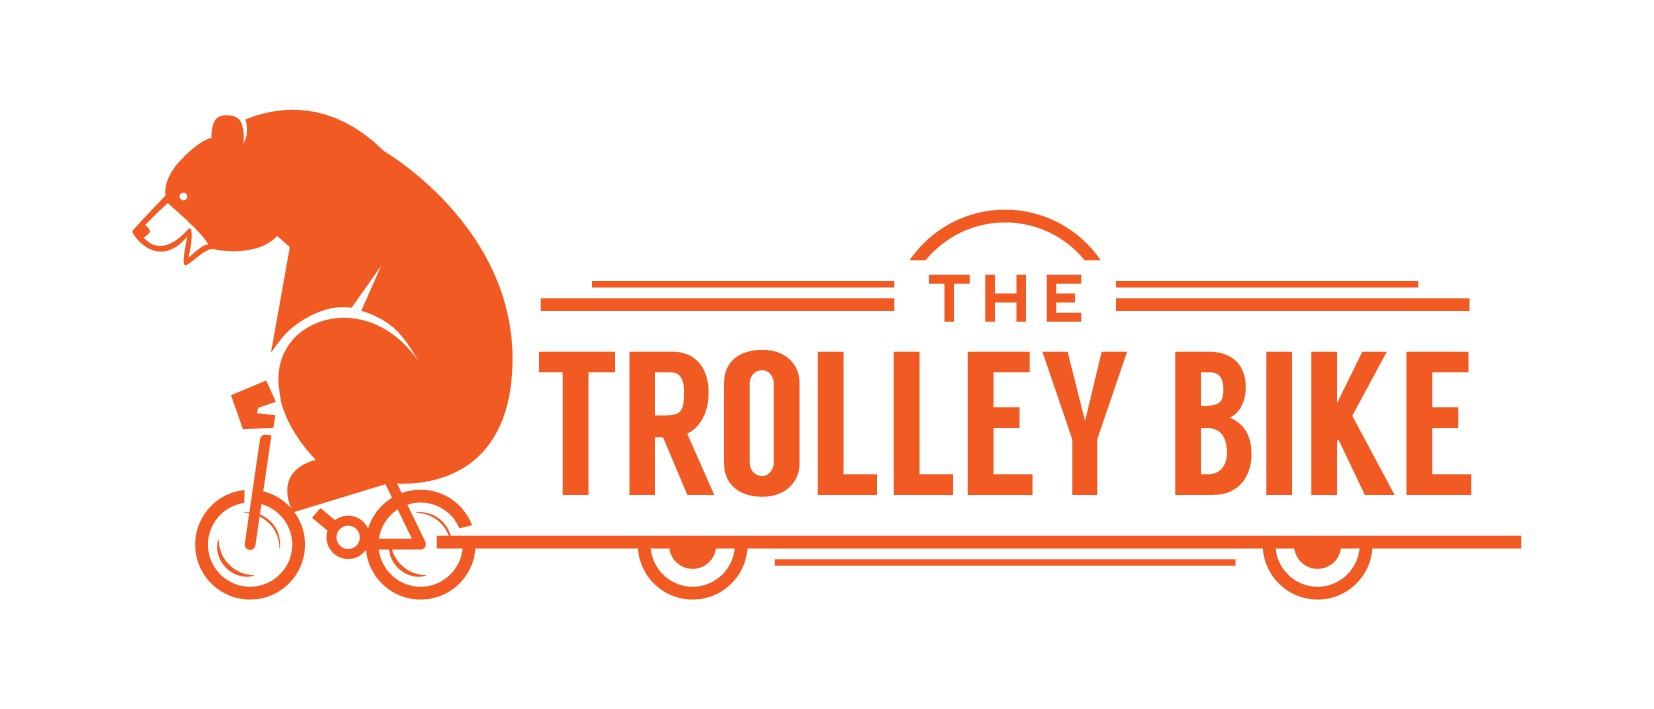 We Need An Awesome Logo For The Trolley Bike That Kicks Ass